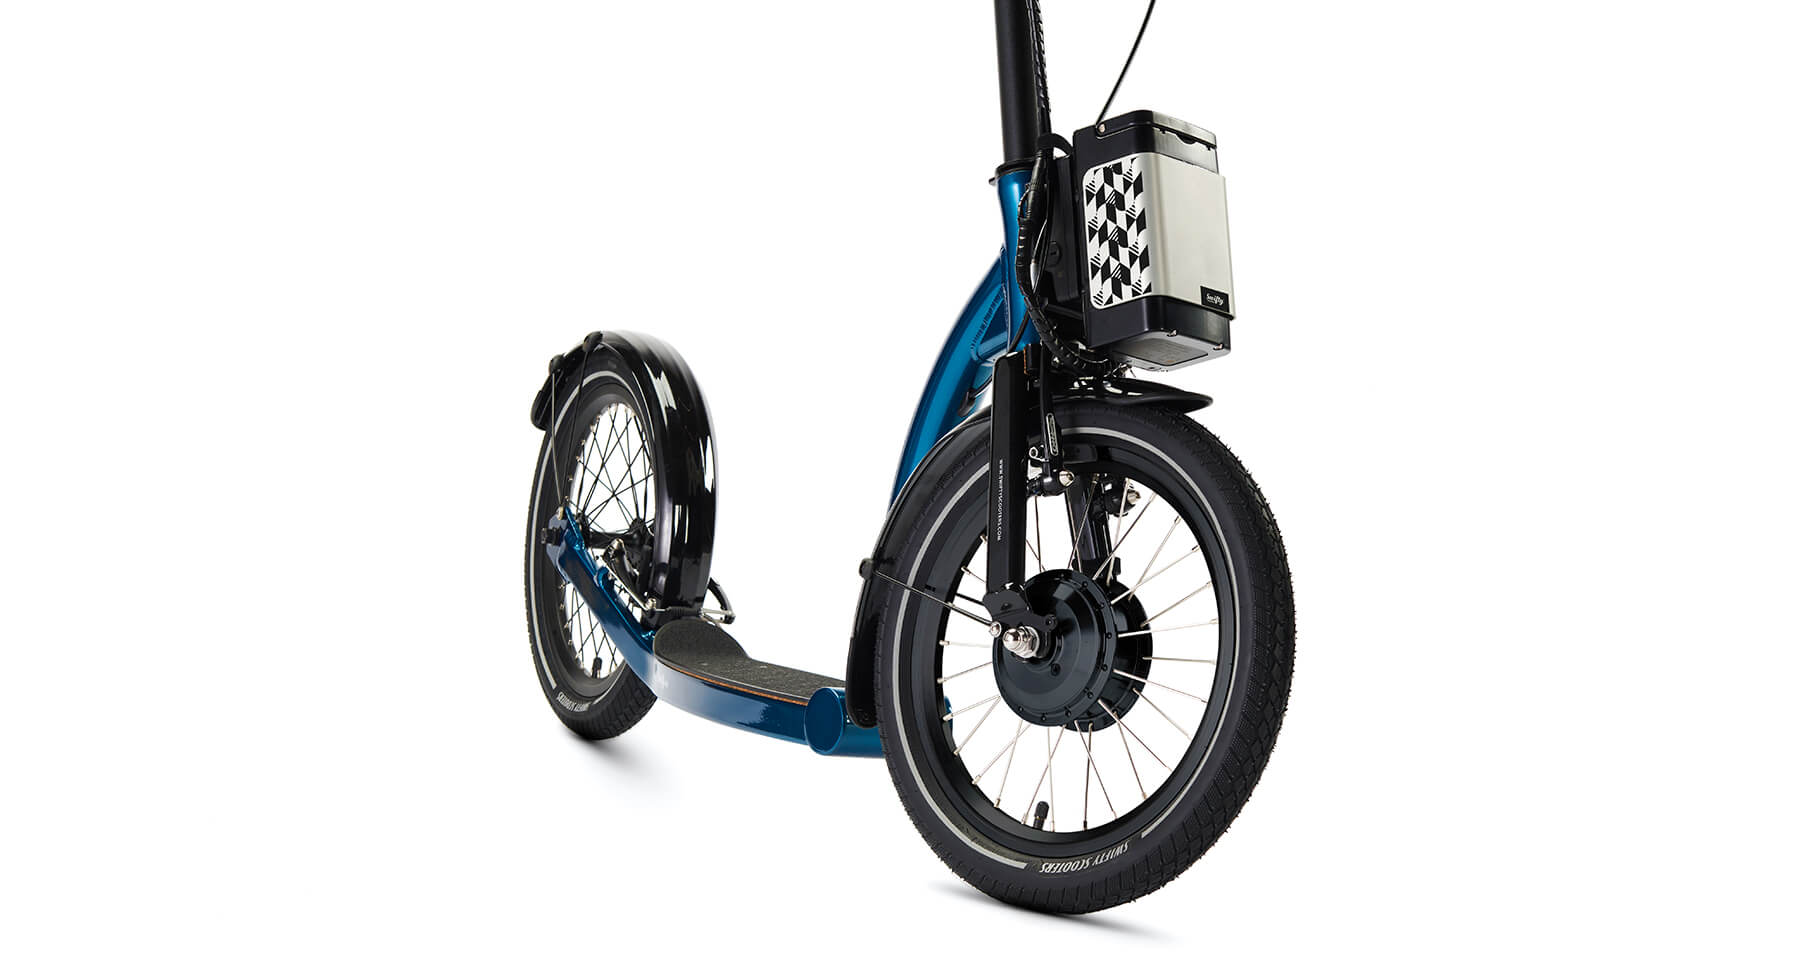 electric scooter for heavy person, electric scooter for large adults, adults electric scooter